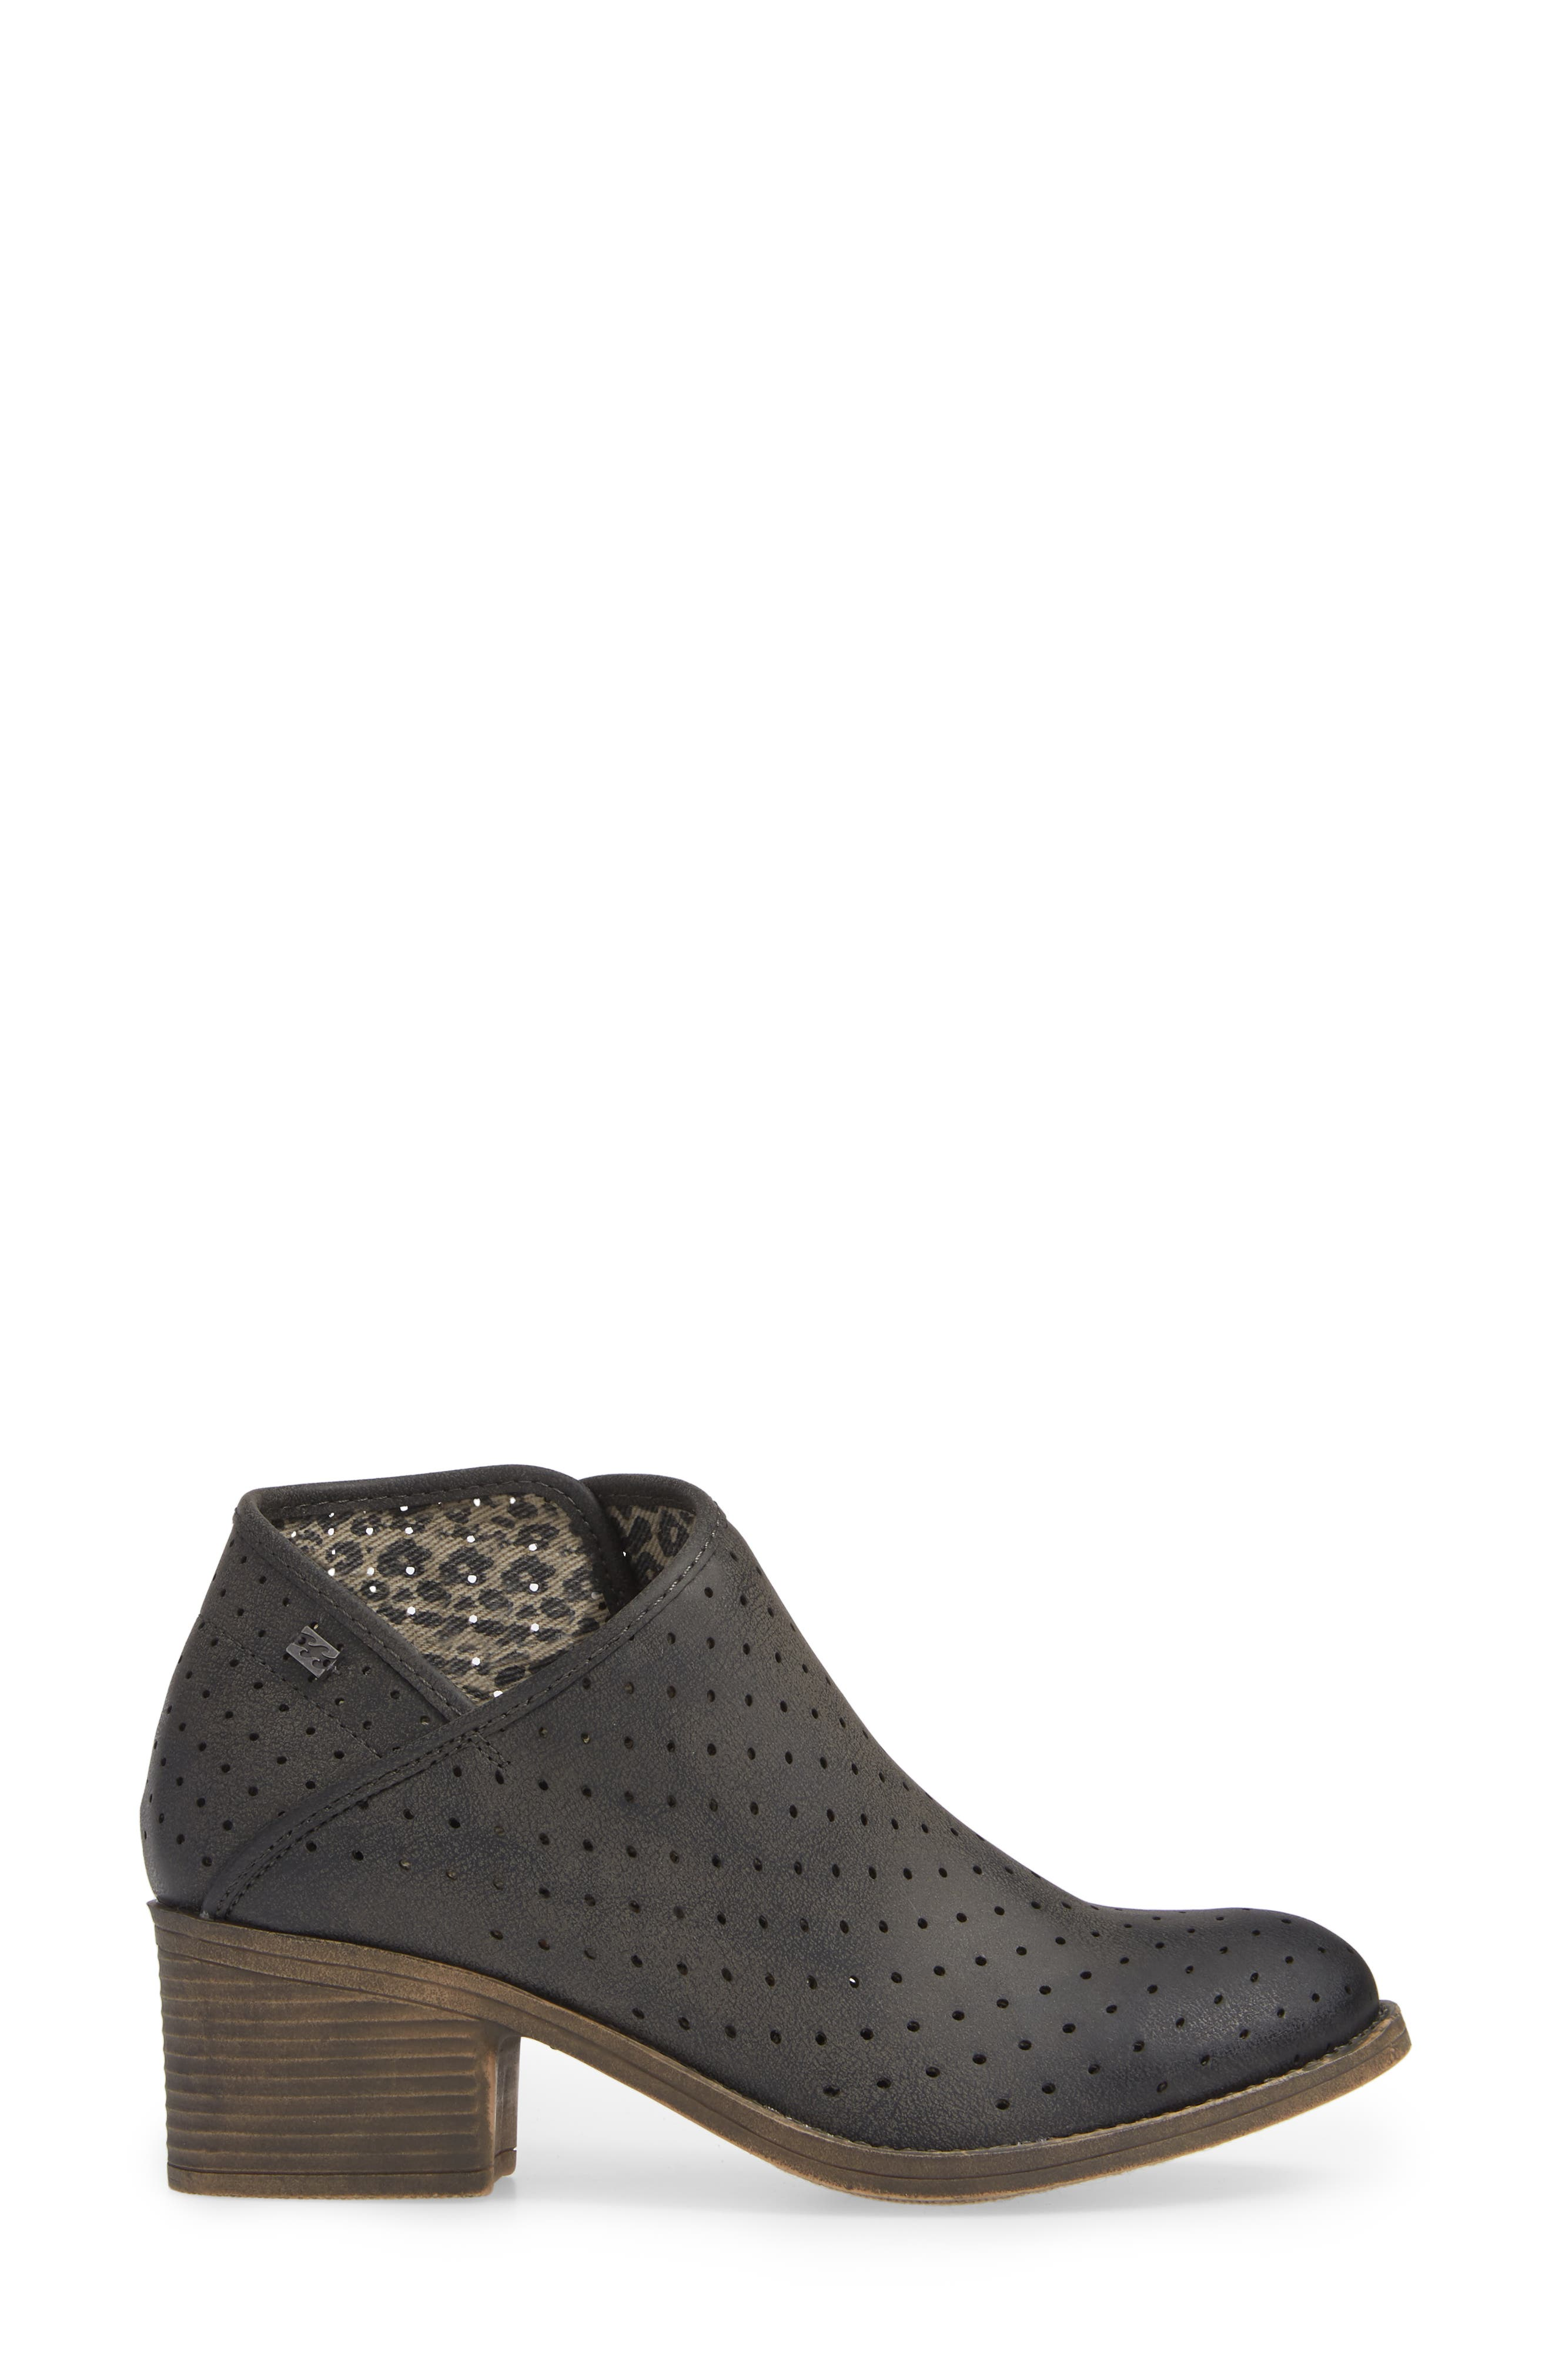 Sunbeams Perforated Bootie,                             Alternate thumbnail 3, color,                             025